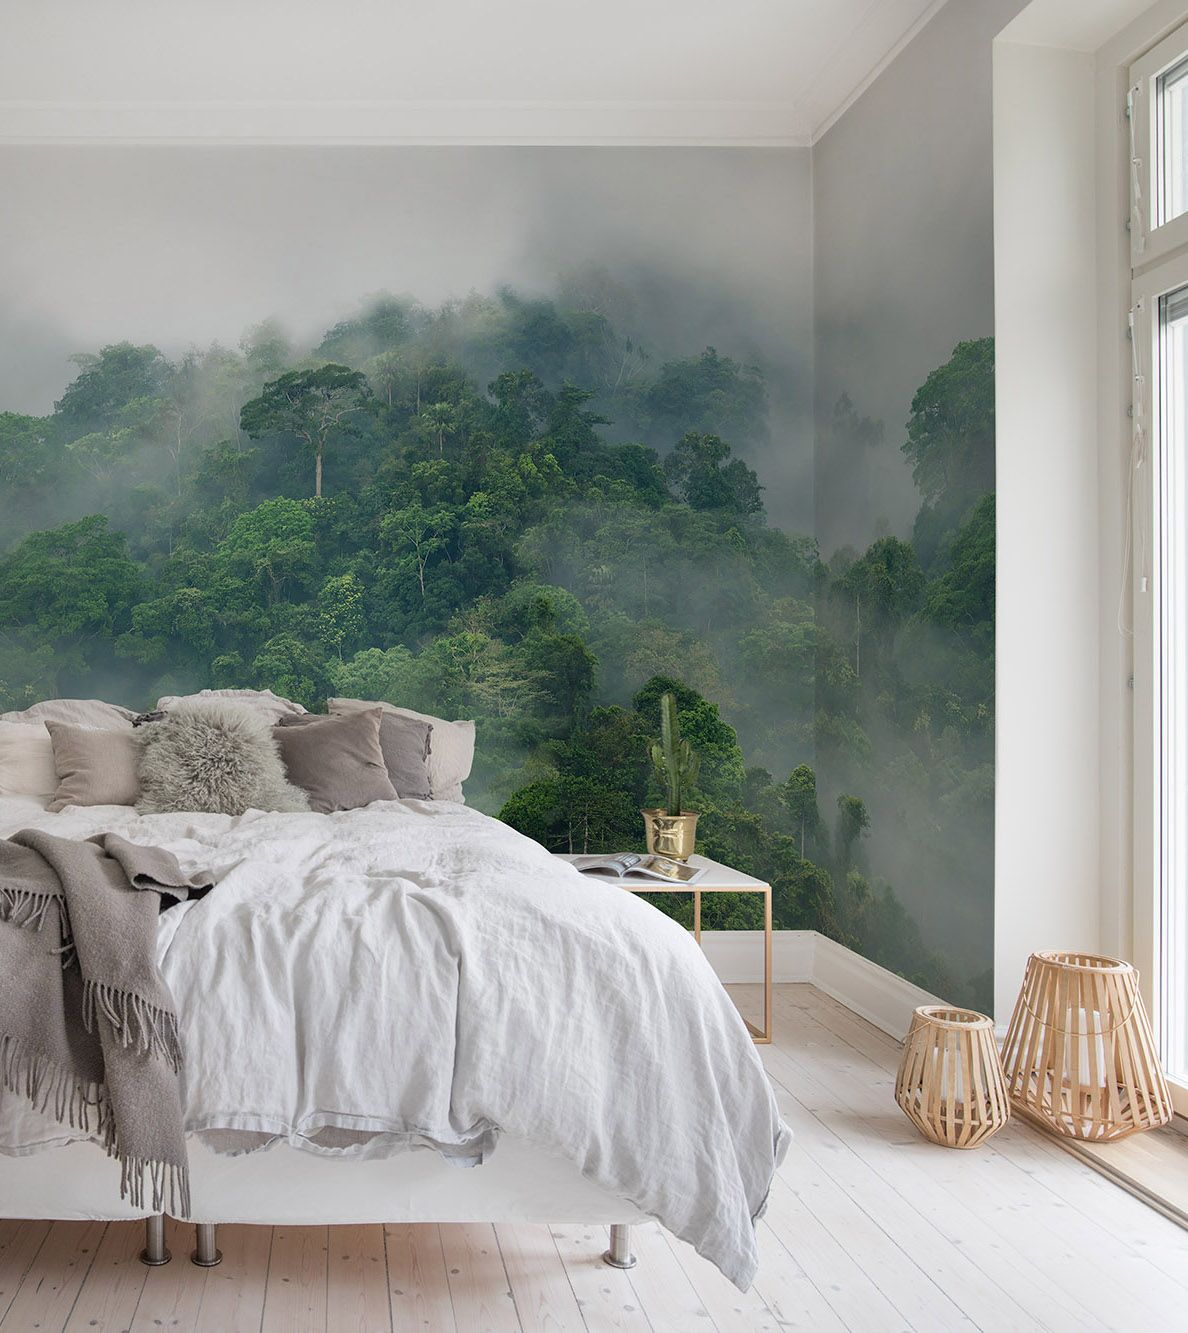 Fototapete Wohnzimmer Modern Misty Forest Home Home Wallpaper Room Wallpaper Und Misty Forest